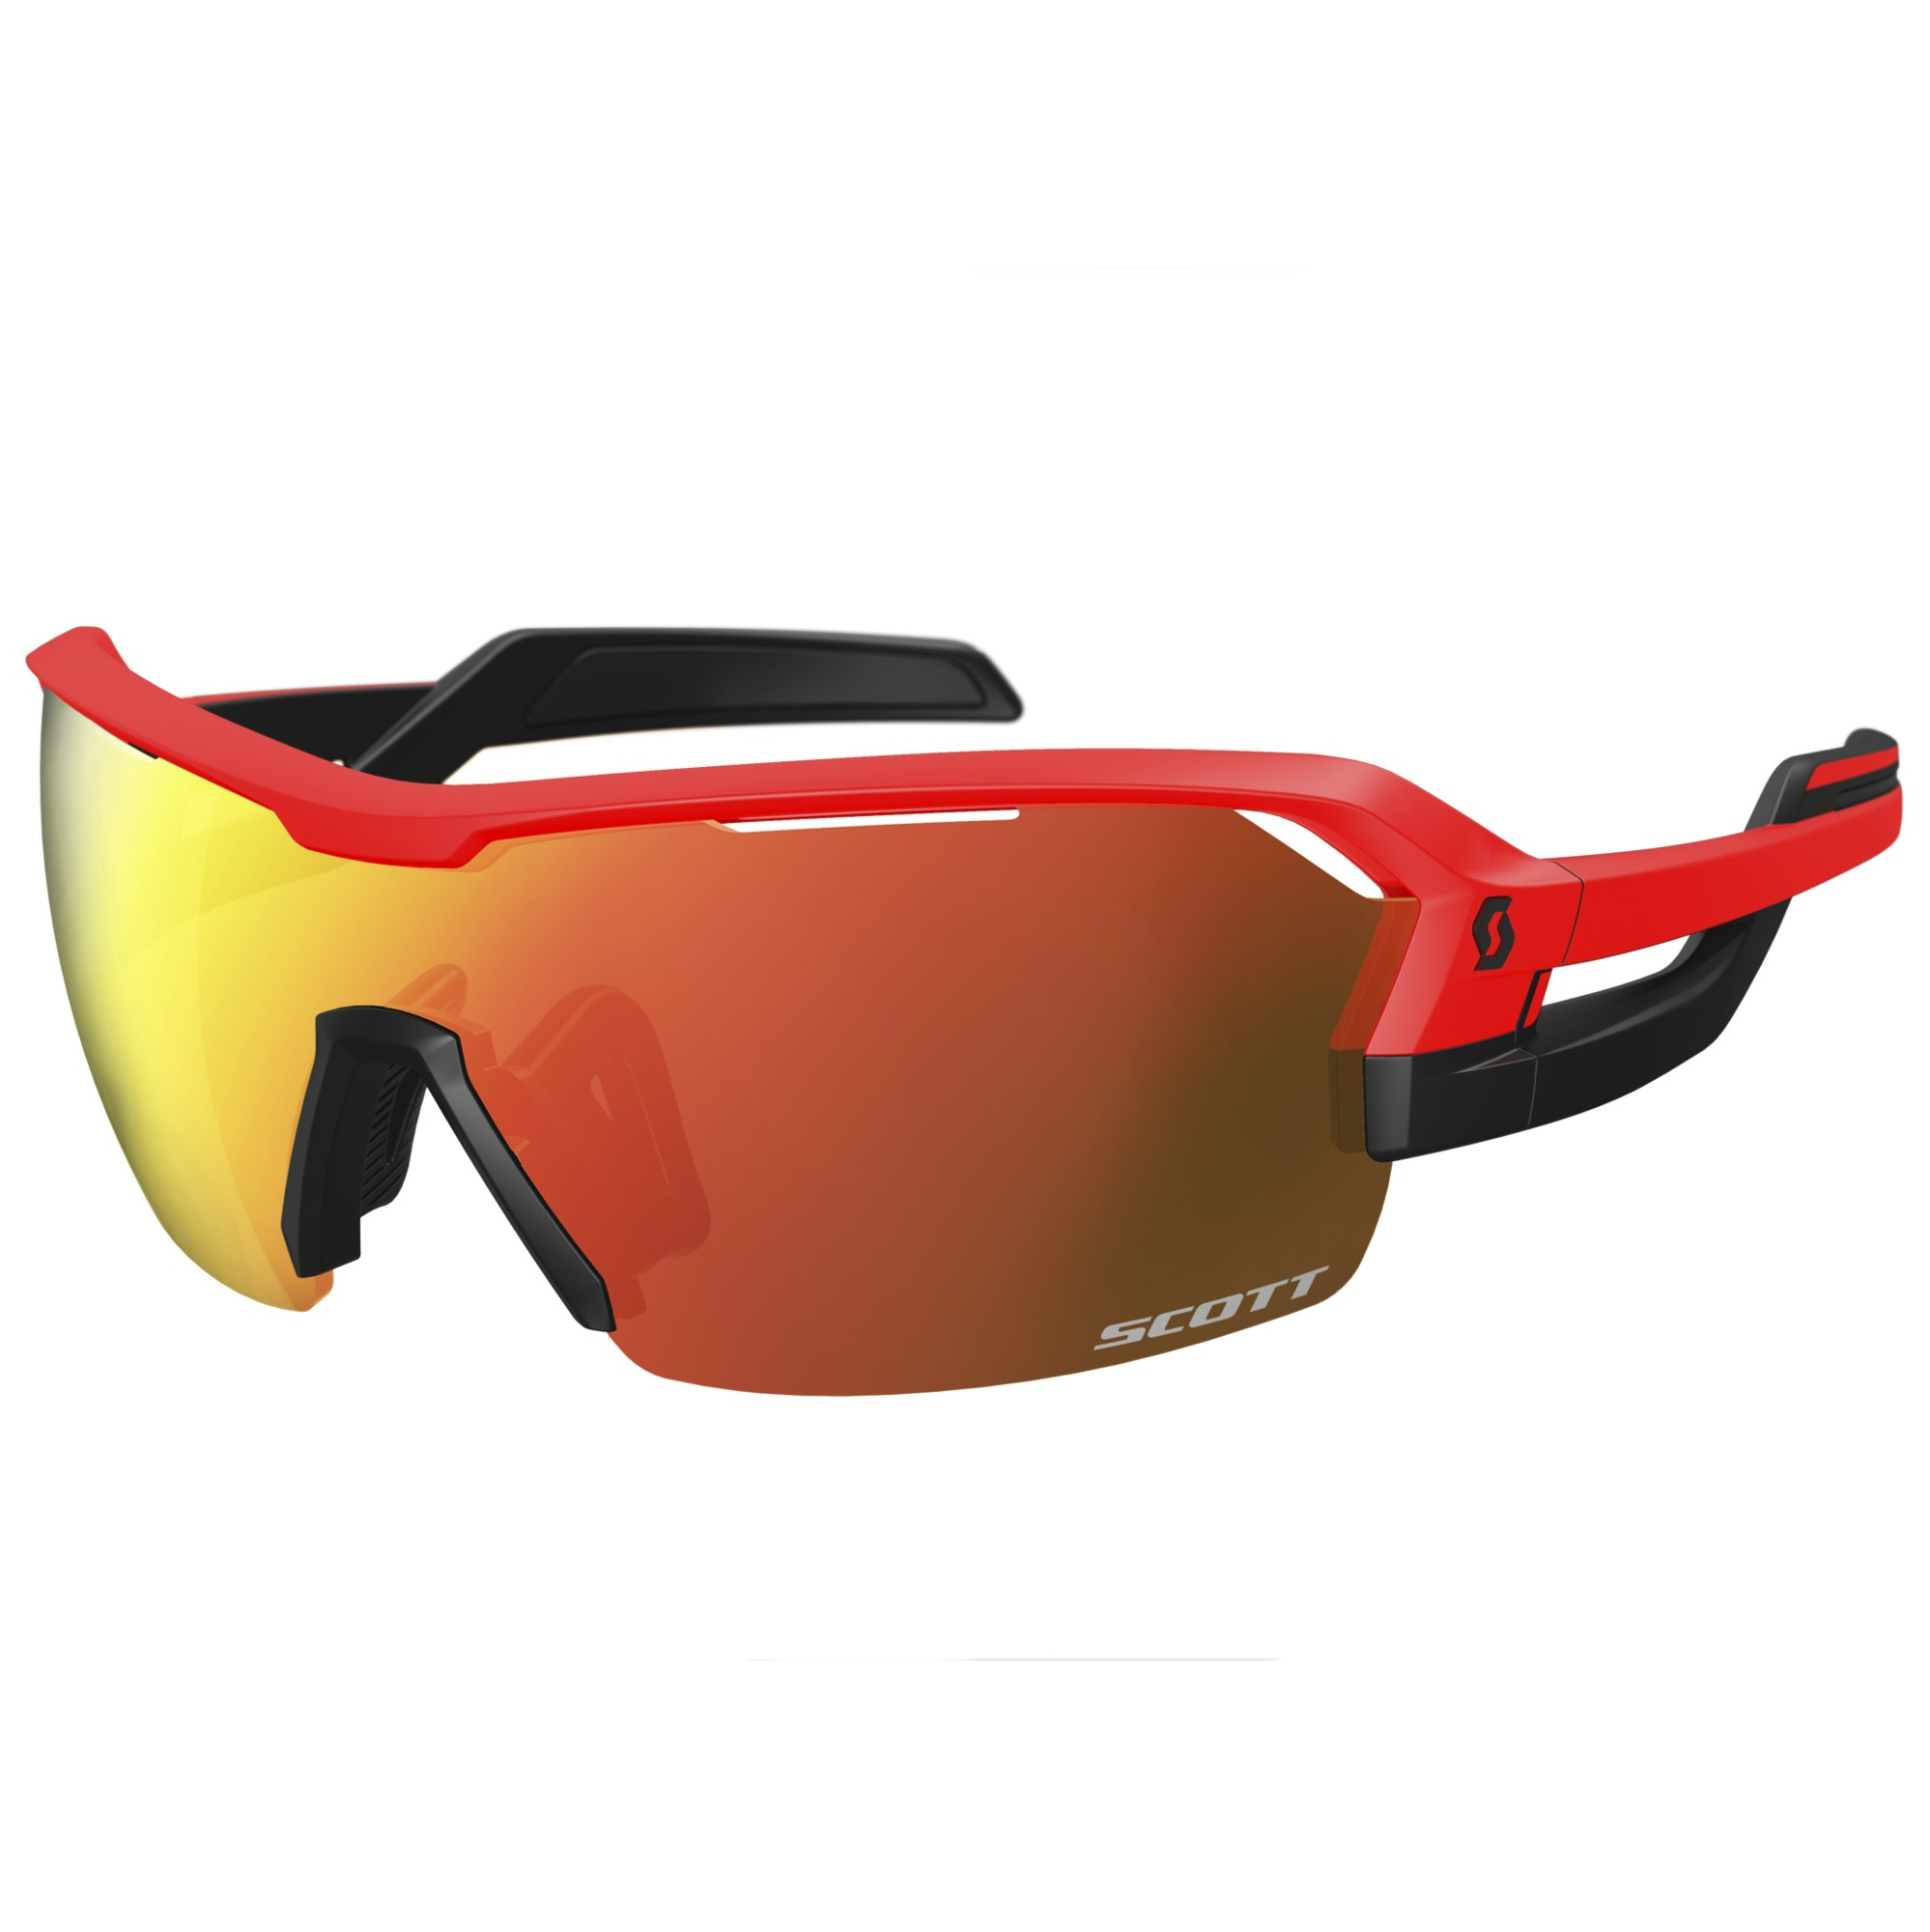 OCCHIALE SPORTIVO SCOTT SPUR SUNGLASSES 241966 neon red matt.jpg